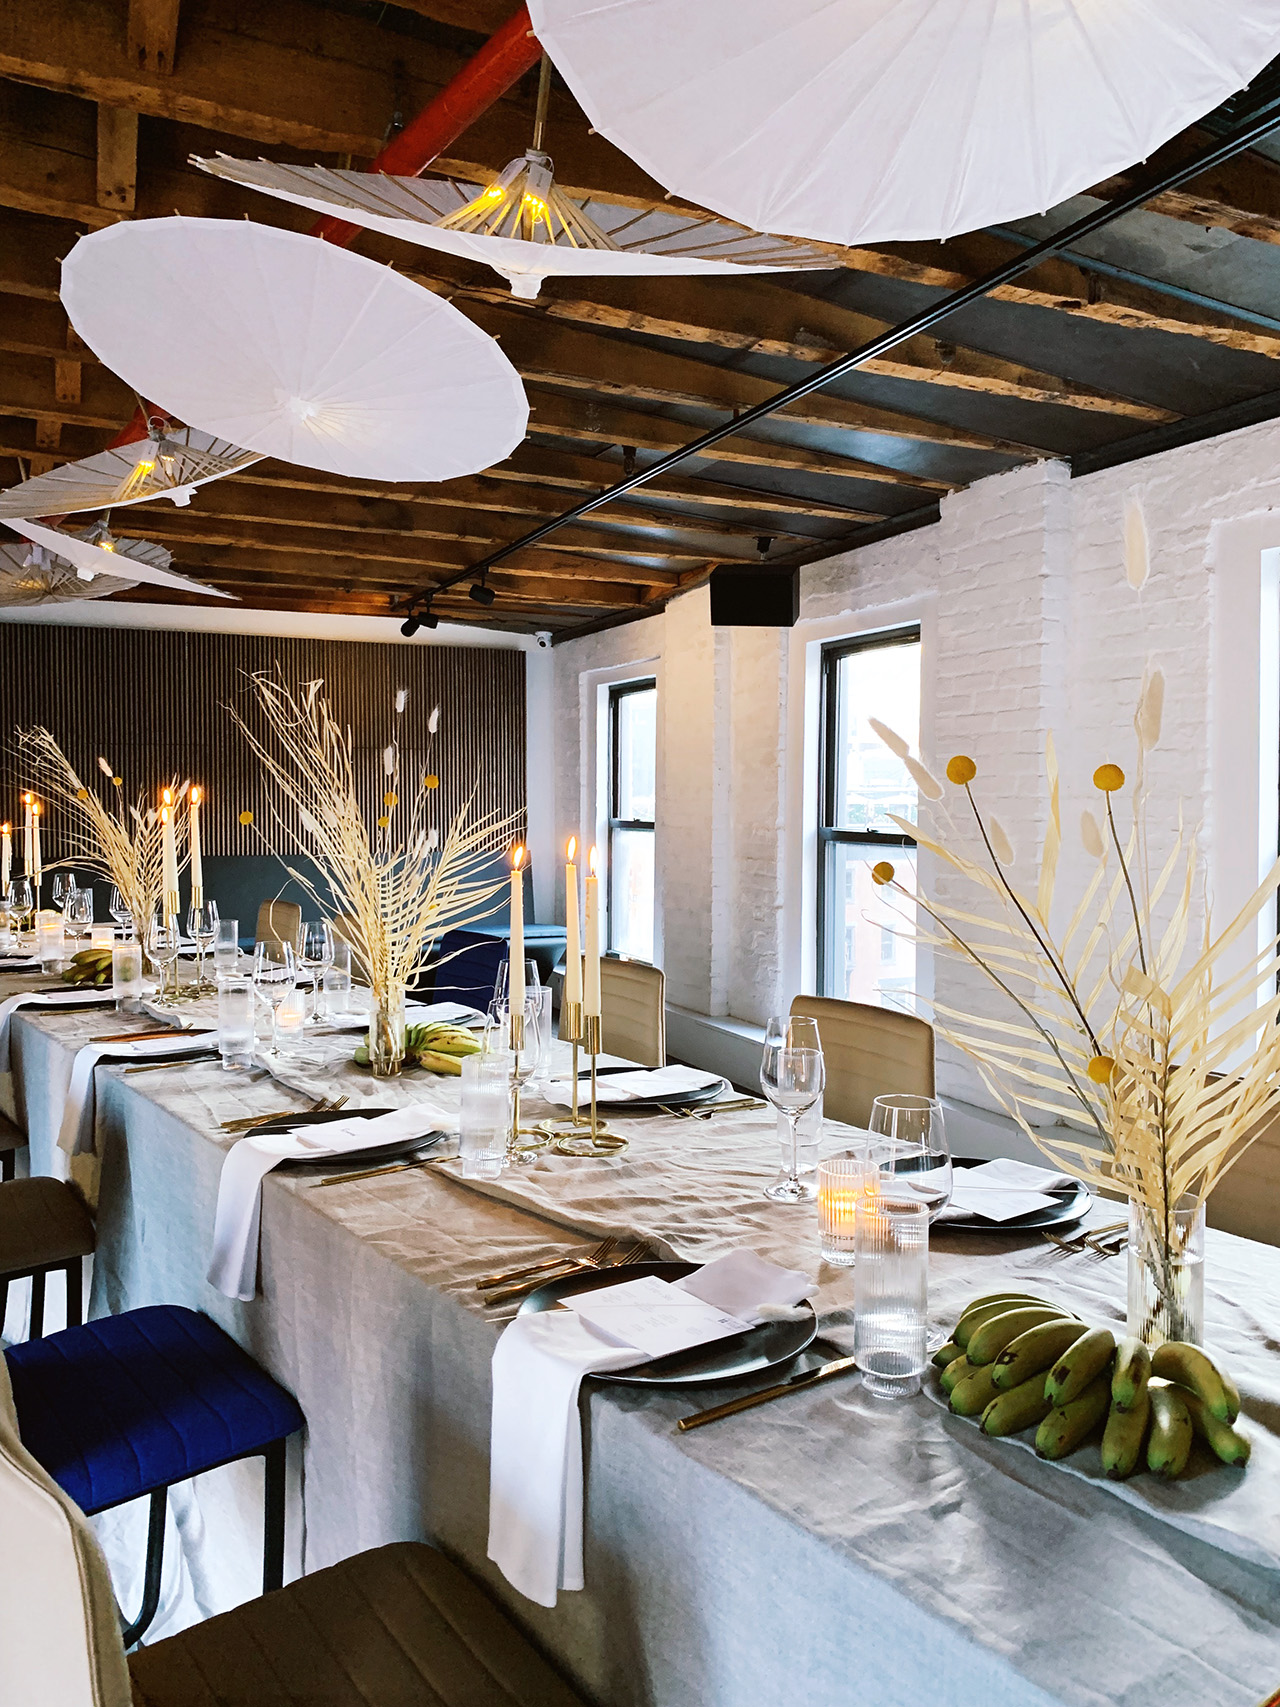 pen-plan penthouse loft wedding venue table setting